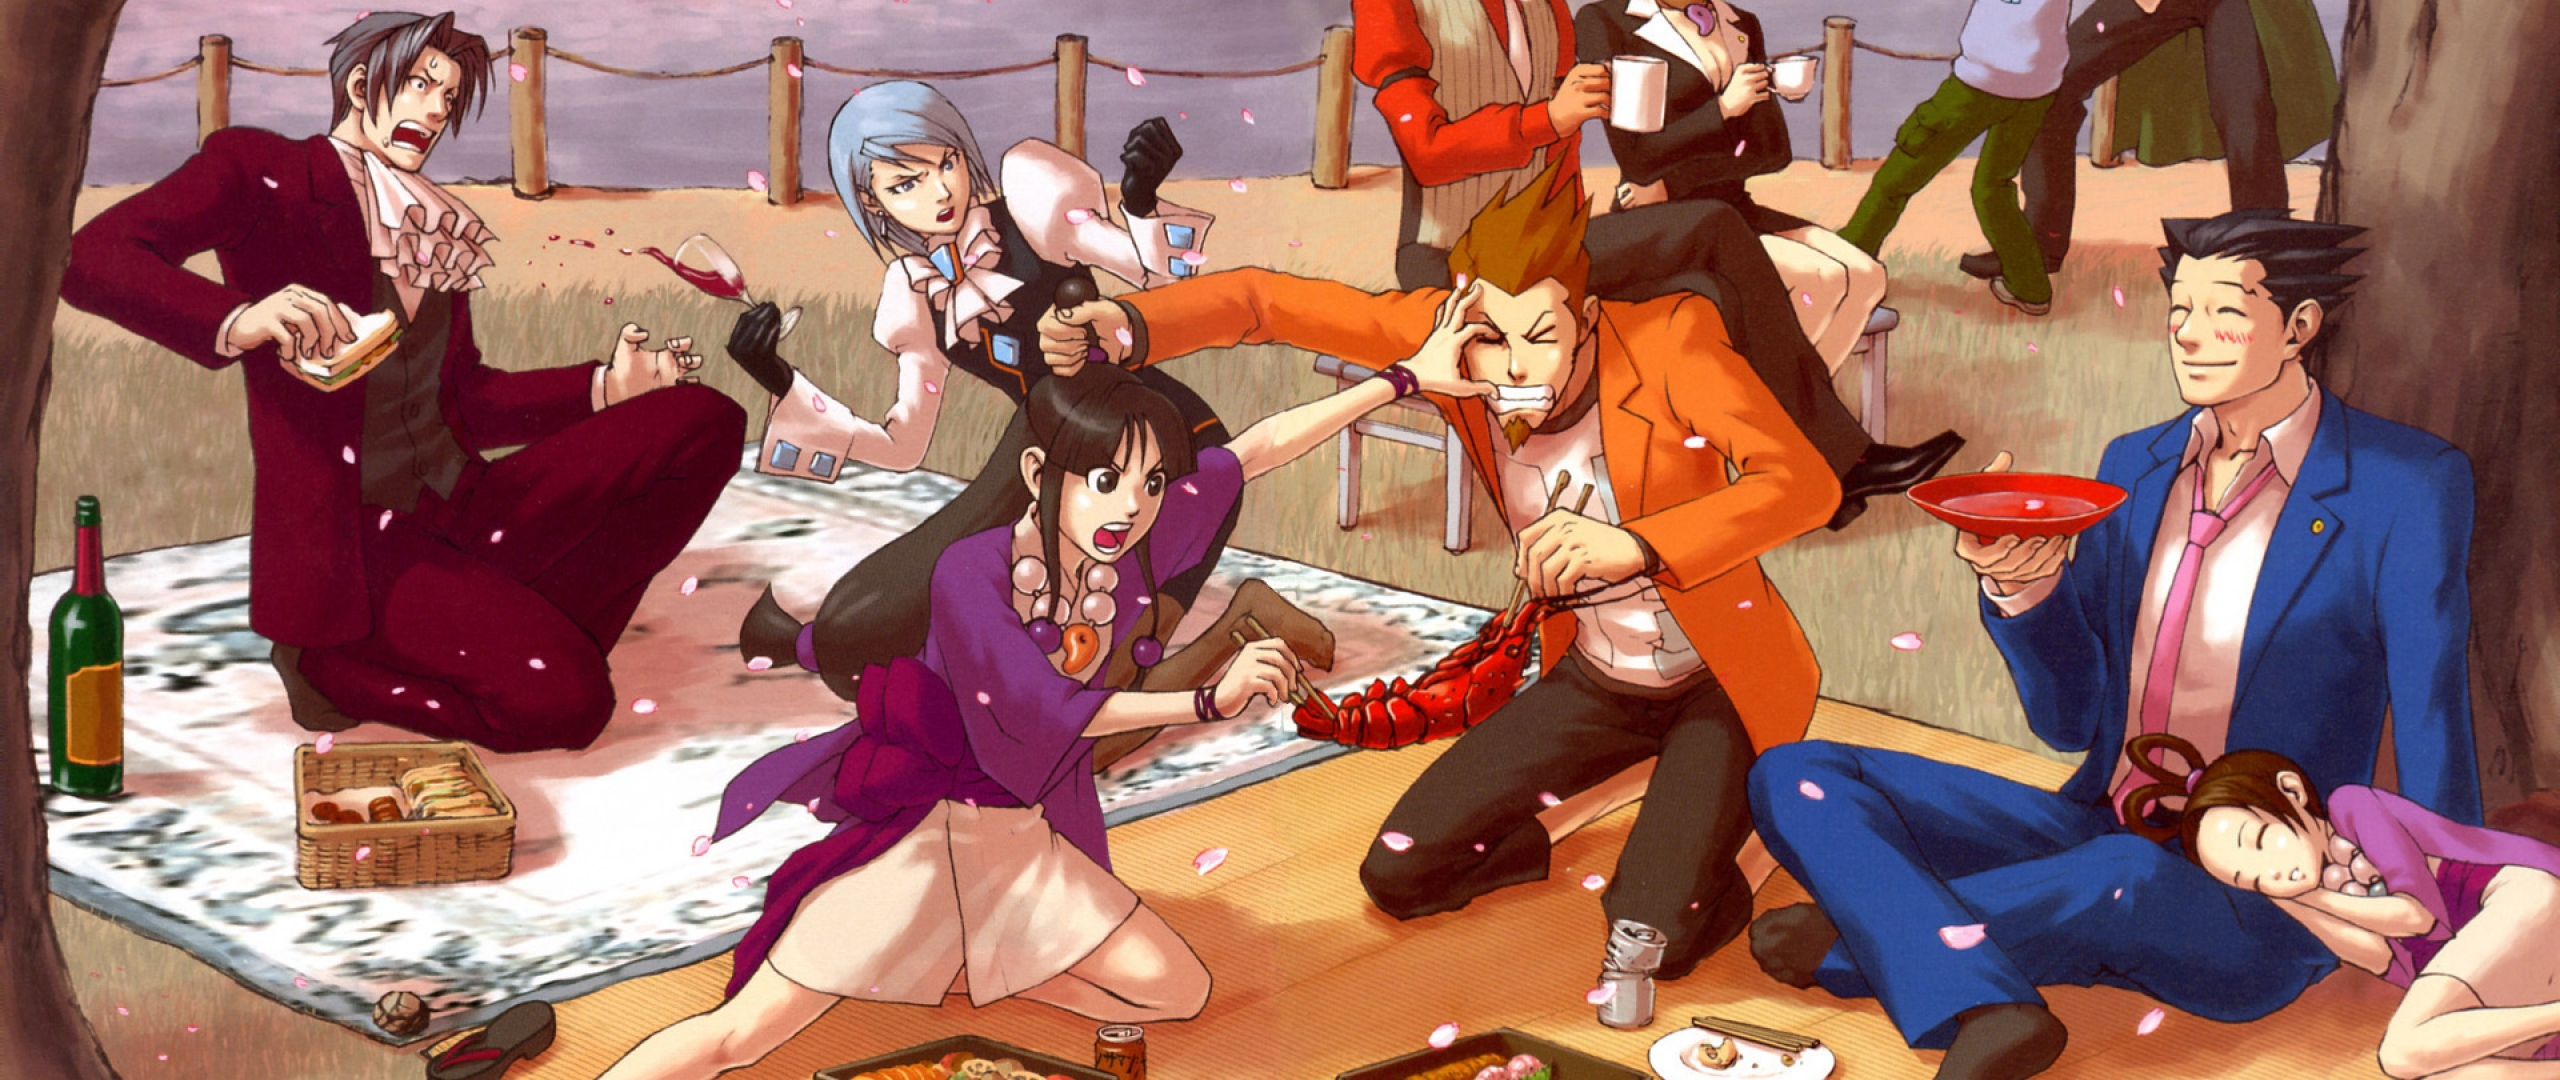 Download Wallpaper 2560x1080 anime picnic emotions food spring 2560x1080